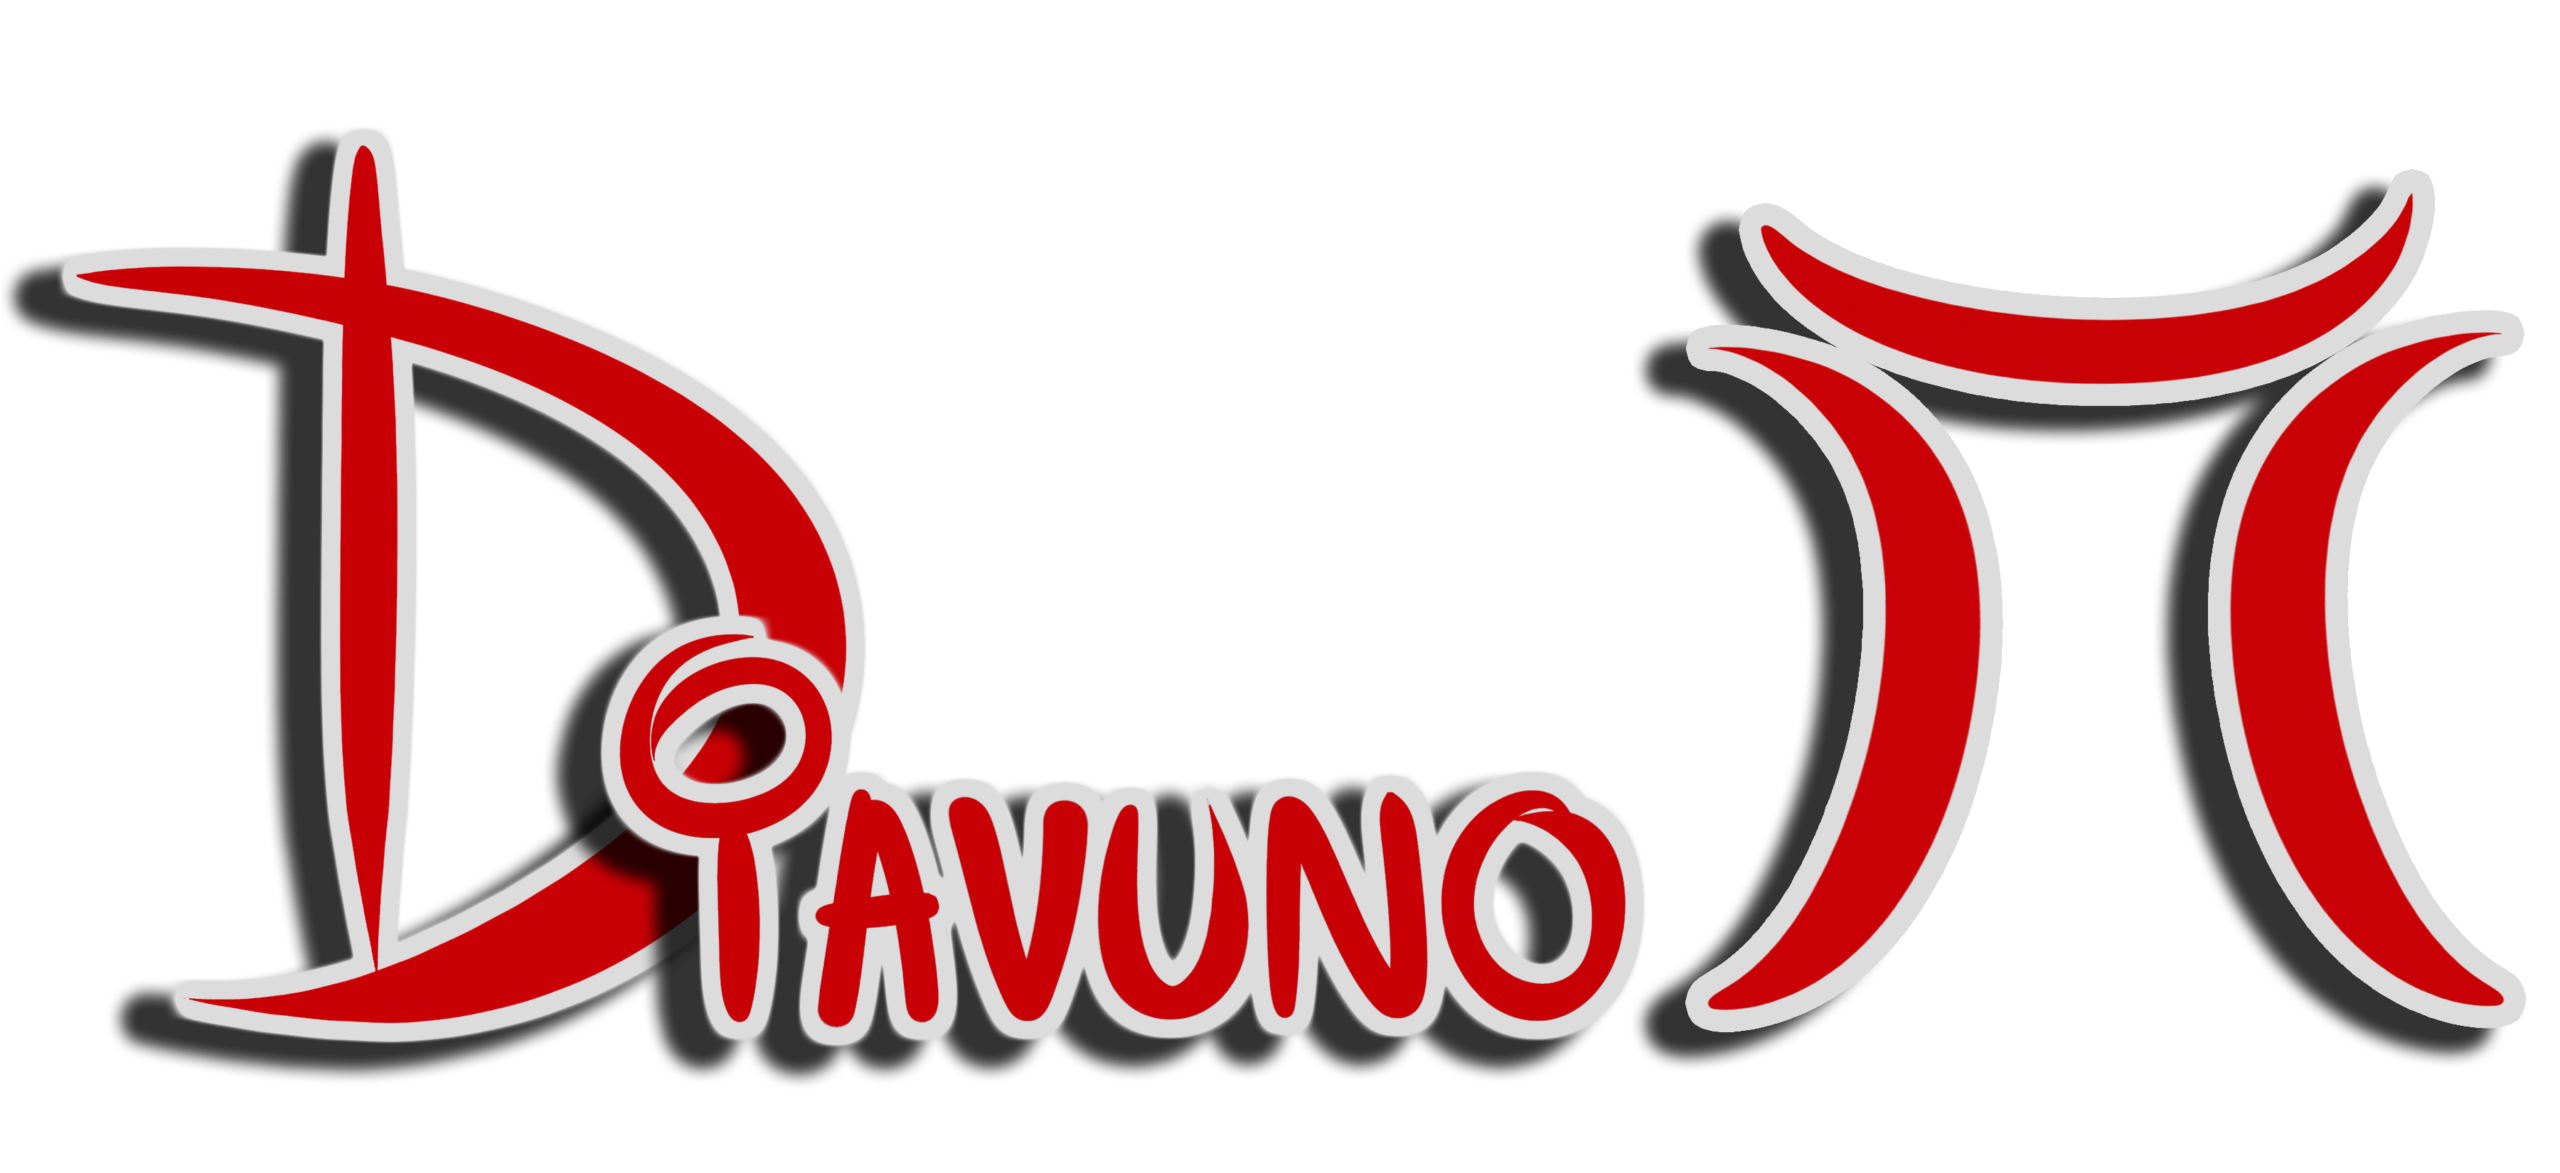 Diavuno IT Service